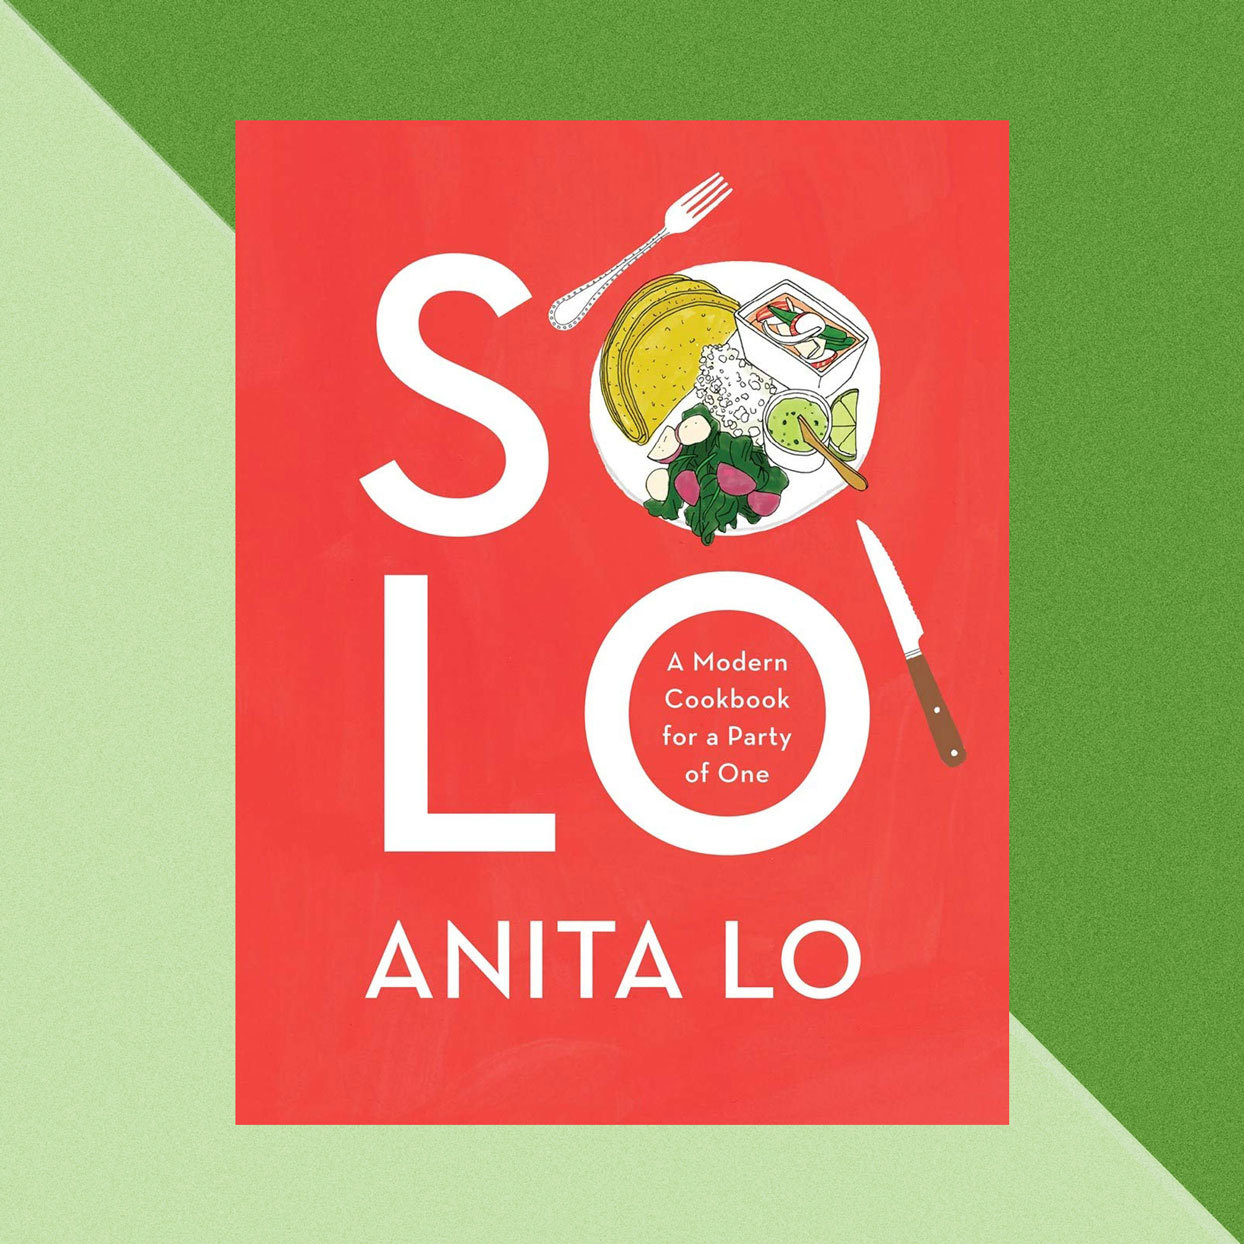 Solo - A Modern Cookbook for a Party of One - Anita Lo Book Cover